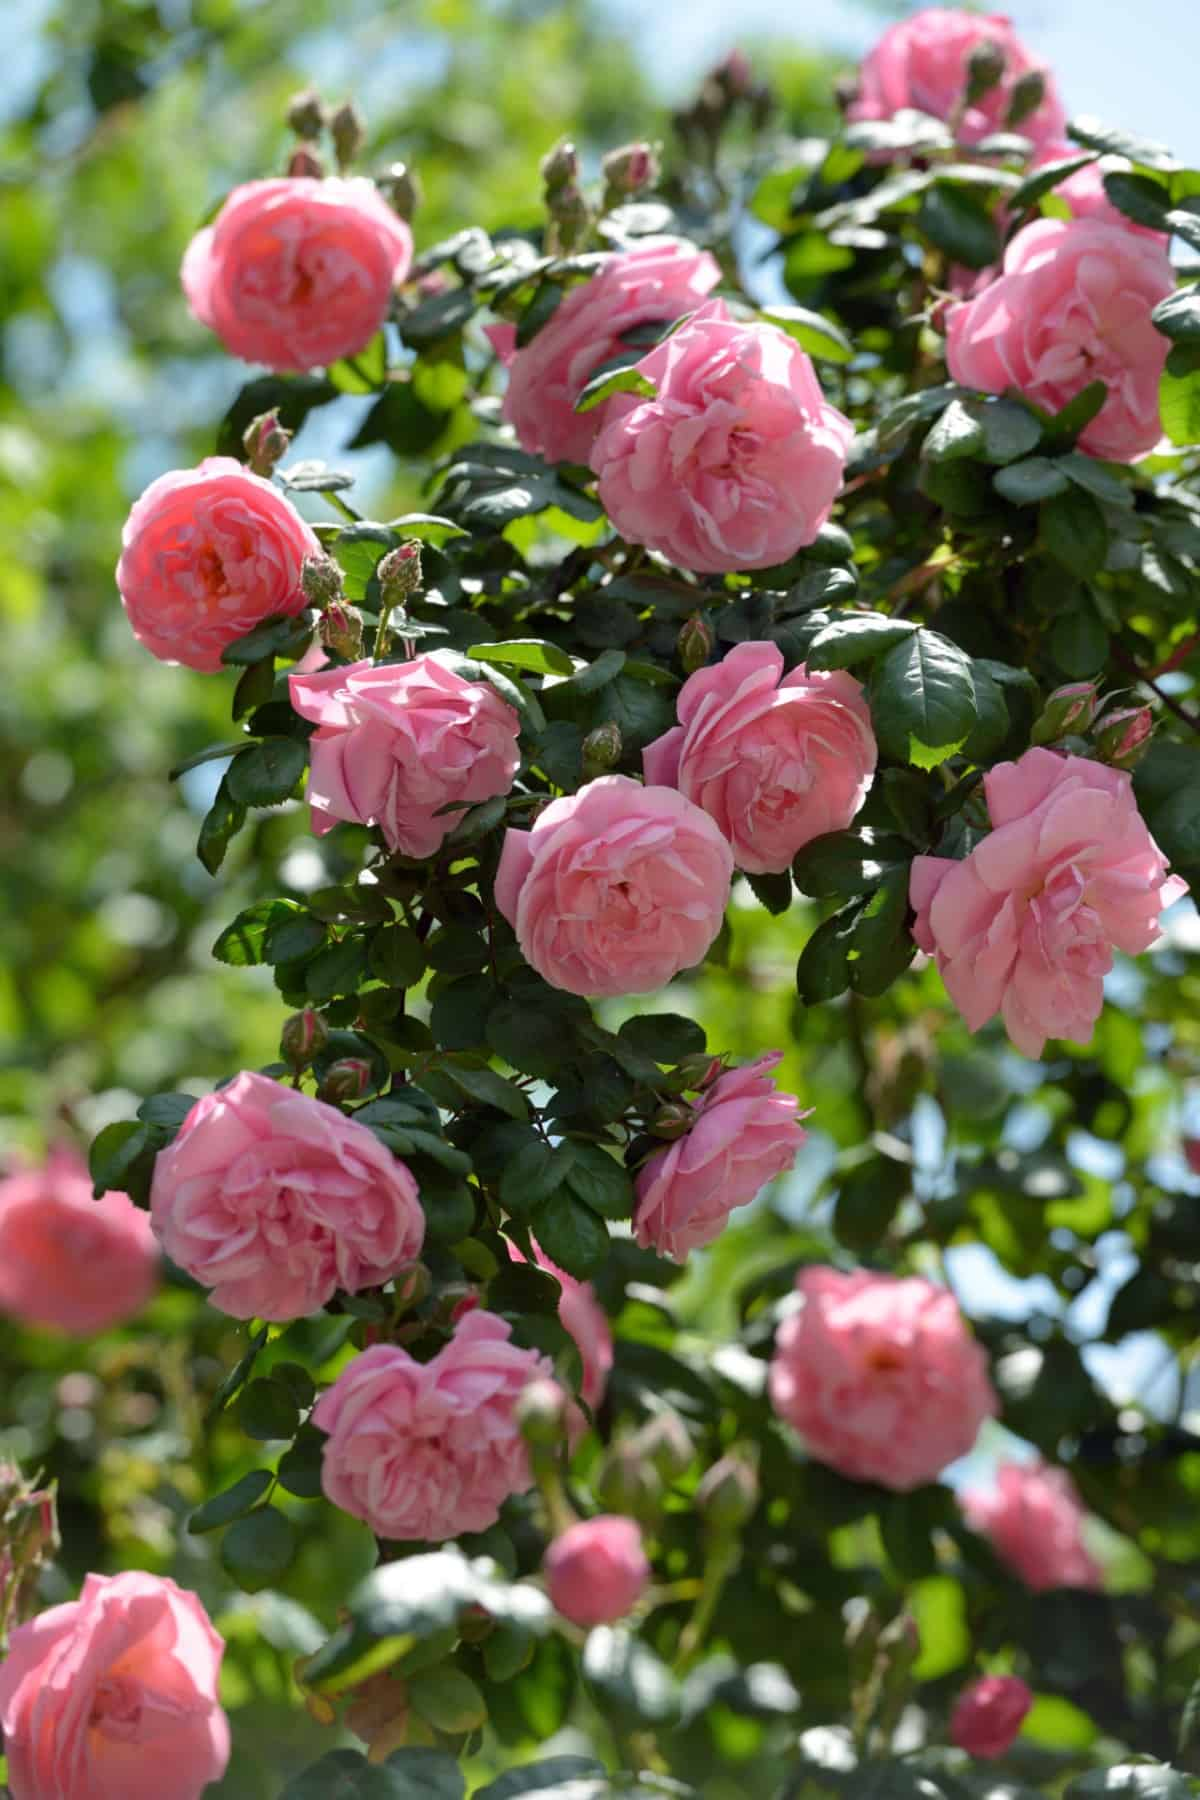 climbing roses are a favorite for gardeners